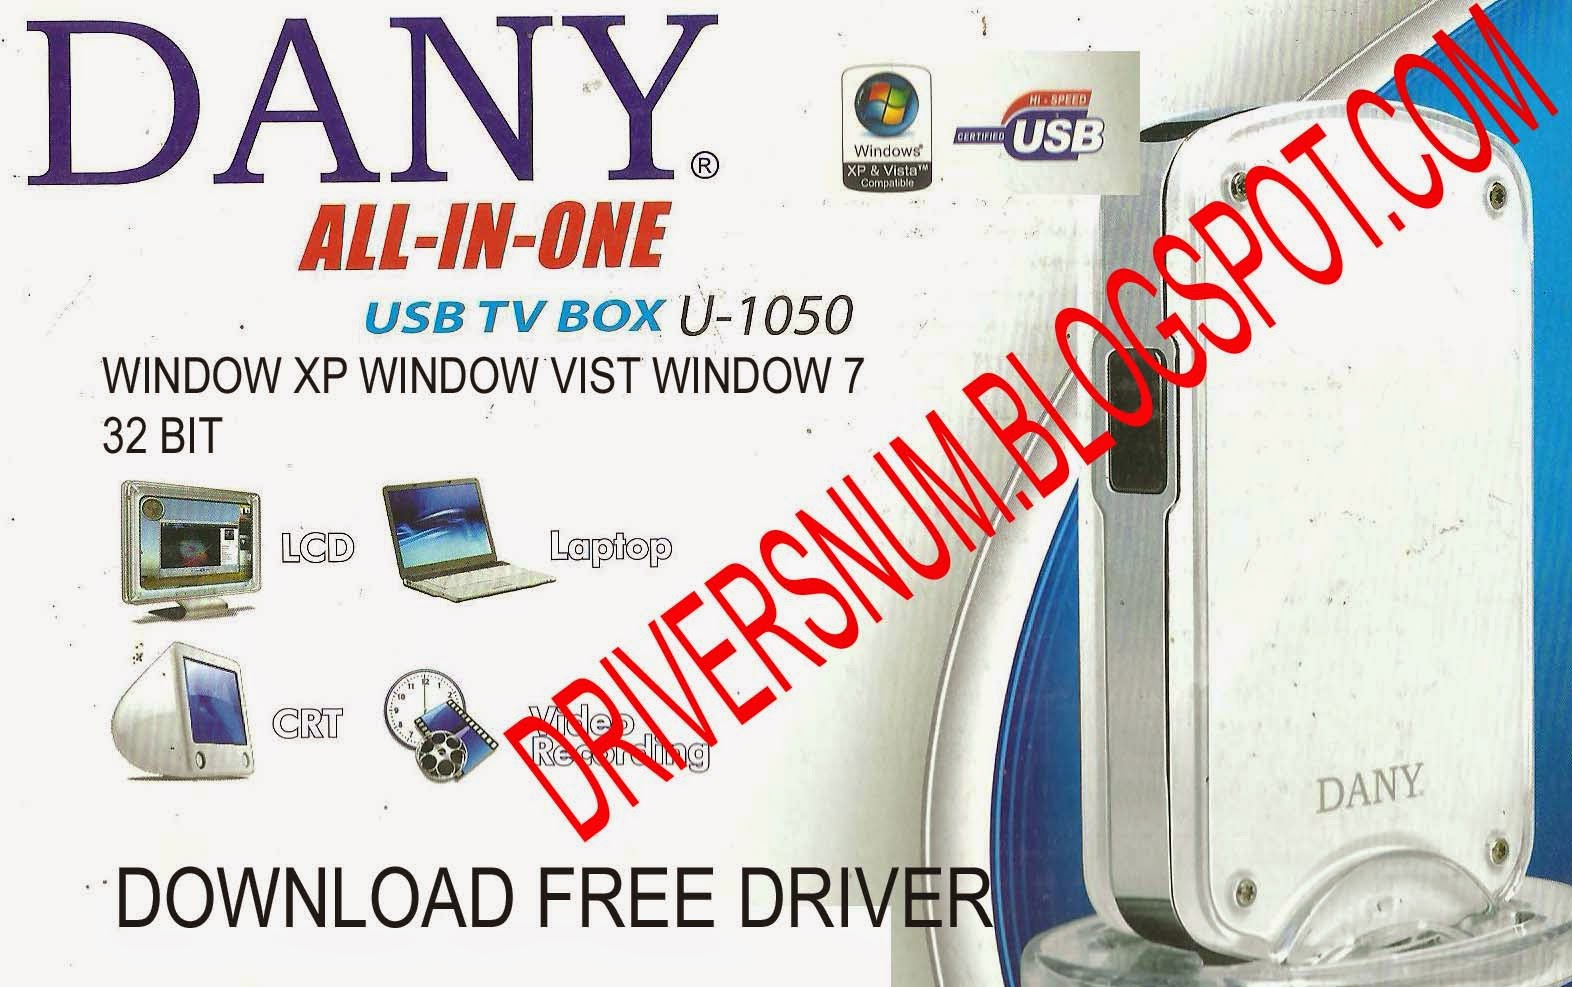 How to download dany tv tuner card driver youtube.